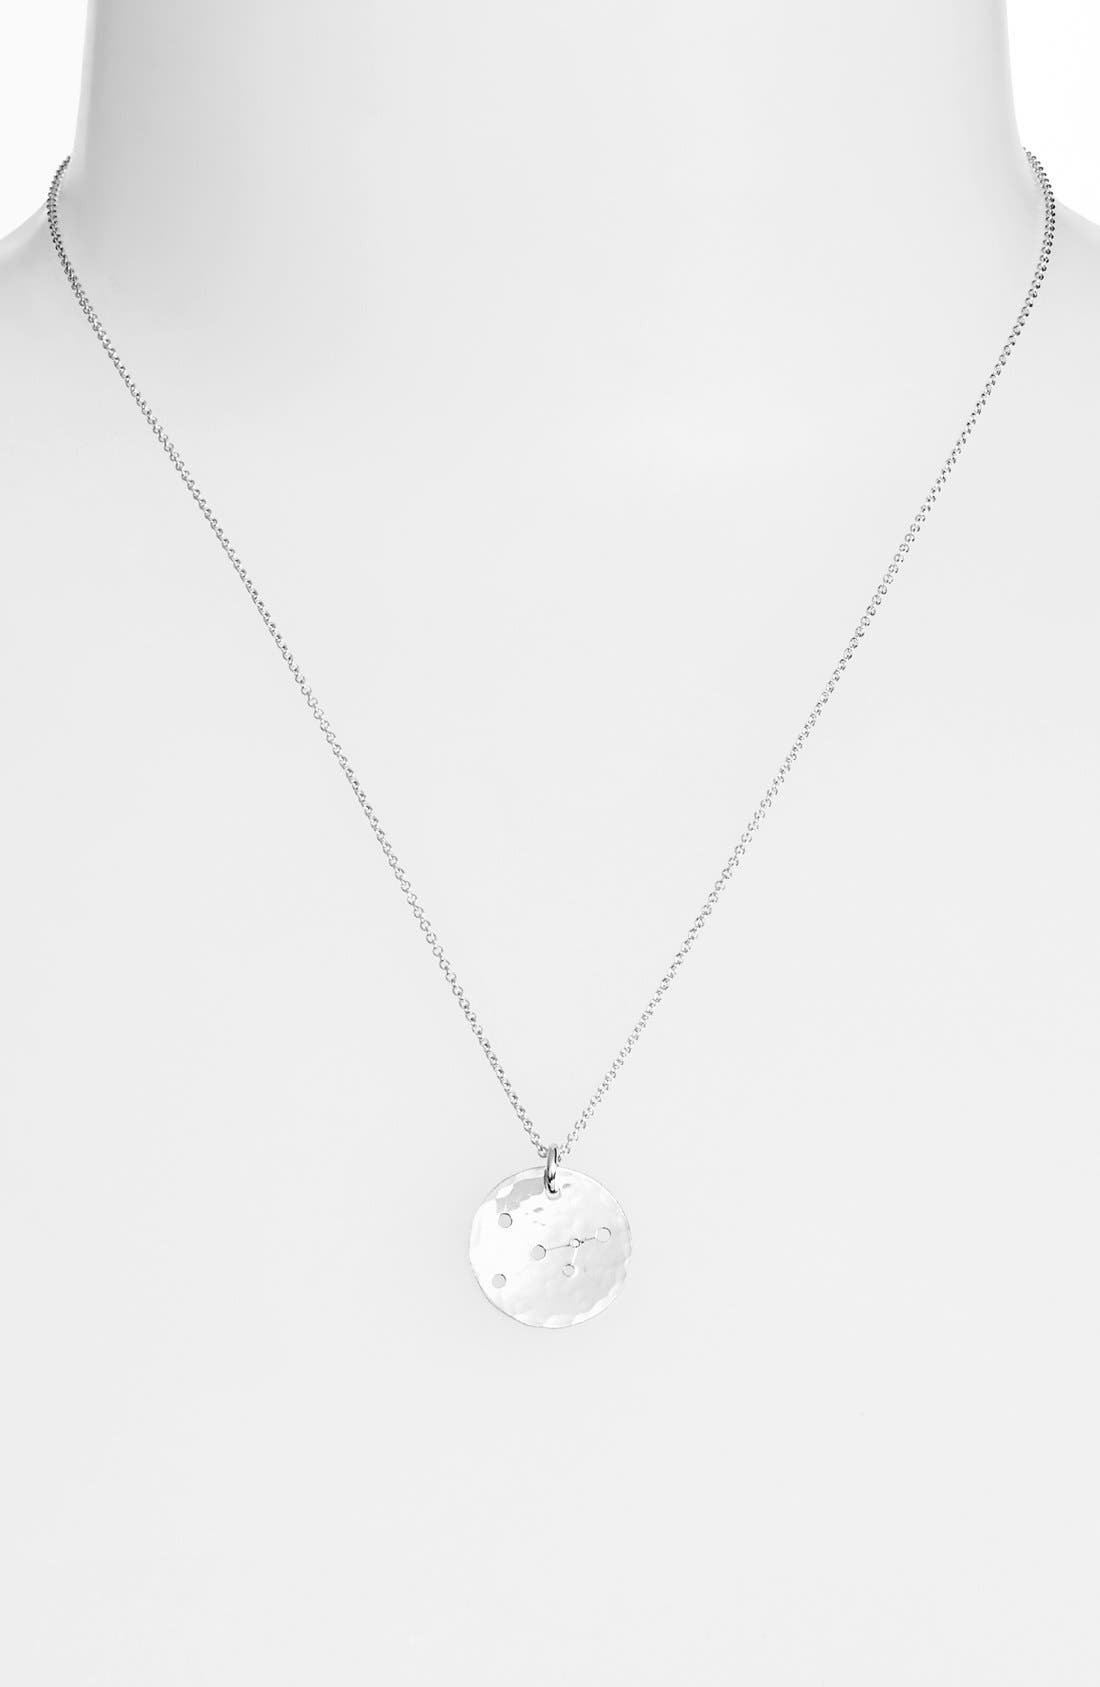 Ija 'Small Zodiac' Sterling Silver Necklace,                         Main,                         color, Sterling Silver Cancer